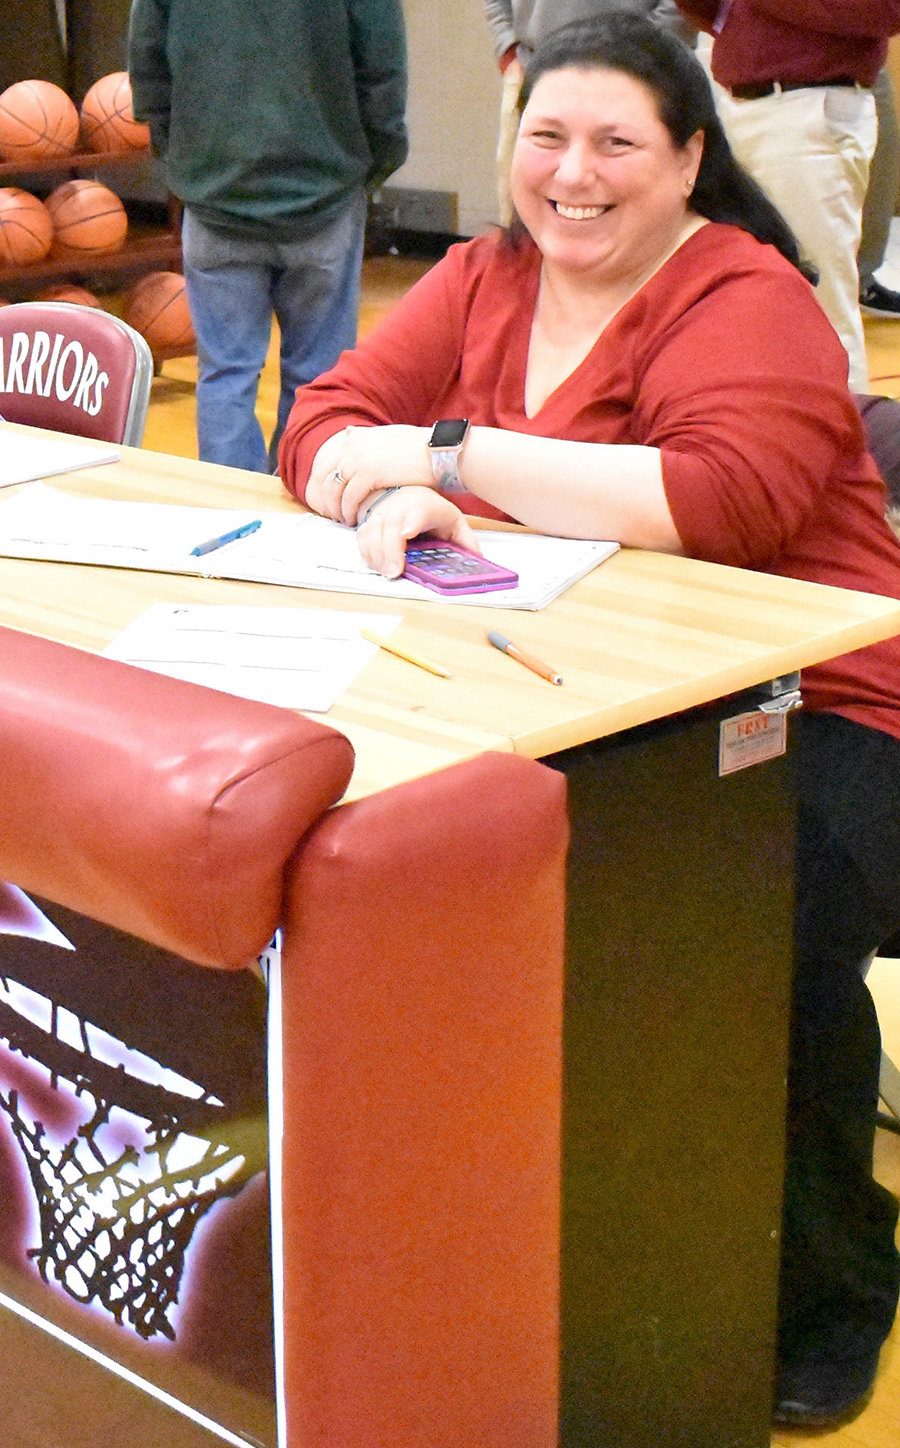 OFFICIAL SCOREKEEPER — Clinton High School basketball is truly a family affair for the Hayduks, of Clinton. Here Gina Hayduk, wife of Dr. Michael Hayduk, deputy director keeps score during a varsity game.  Daughter Lindsay also serves as the team's official photographer.